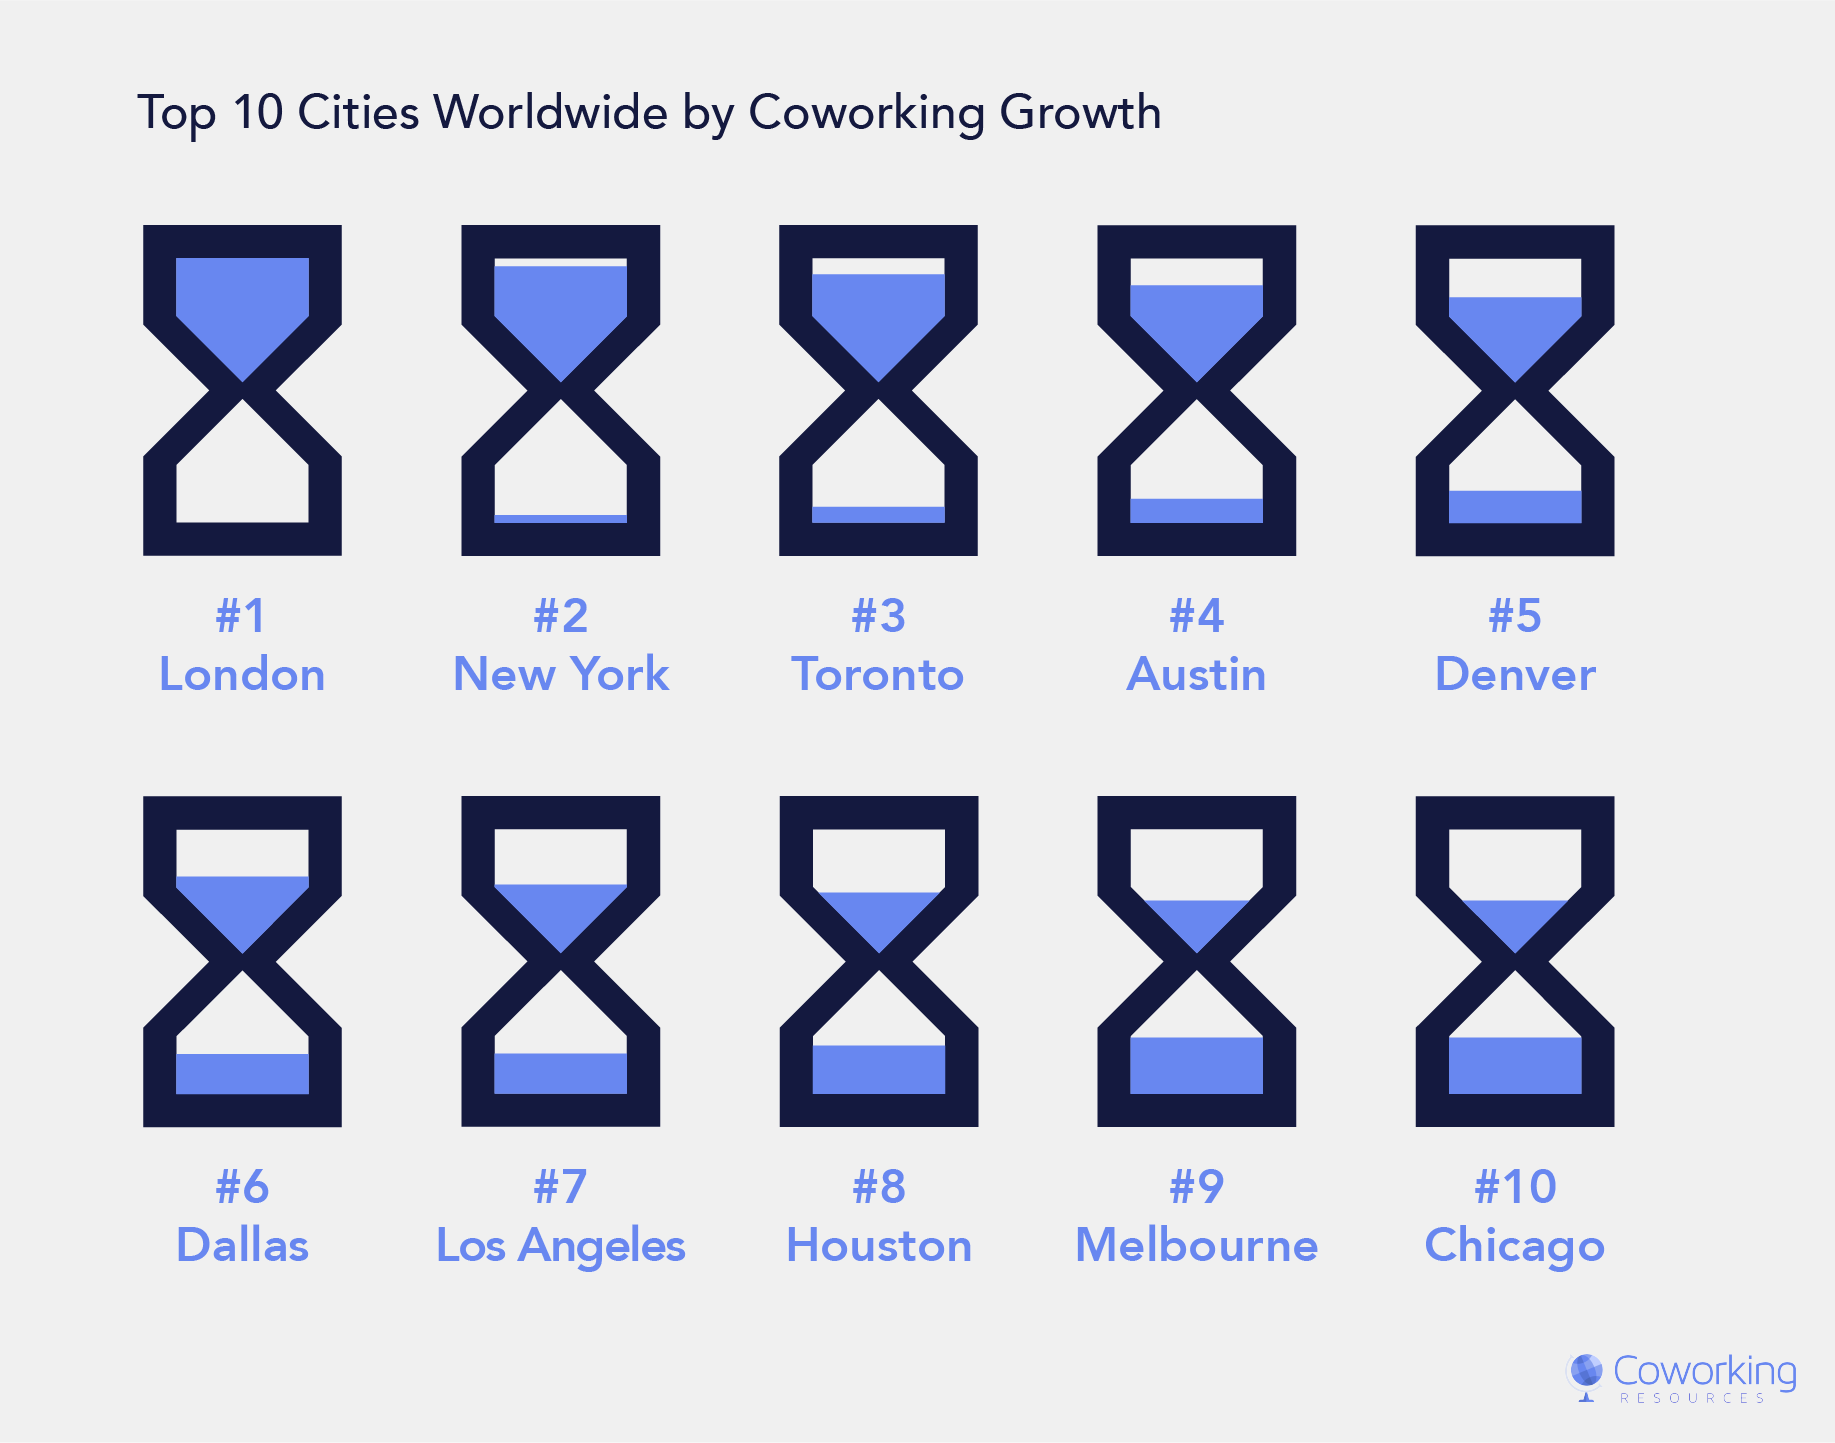 Top Cities by Coworking Growth in 2019